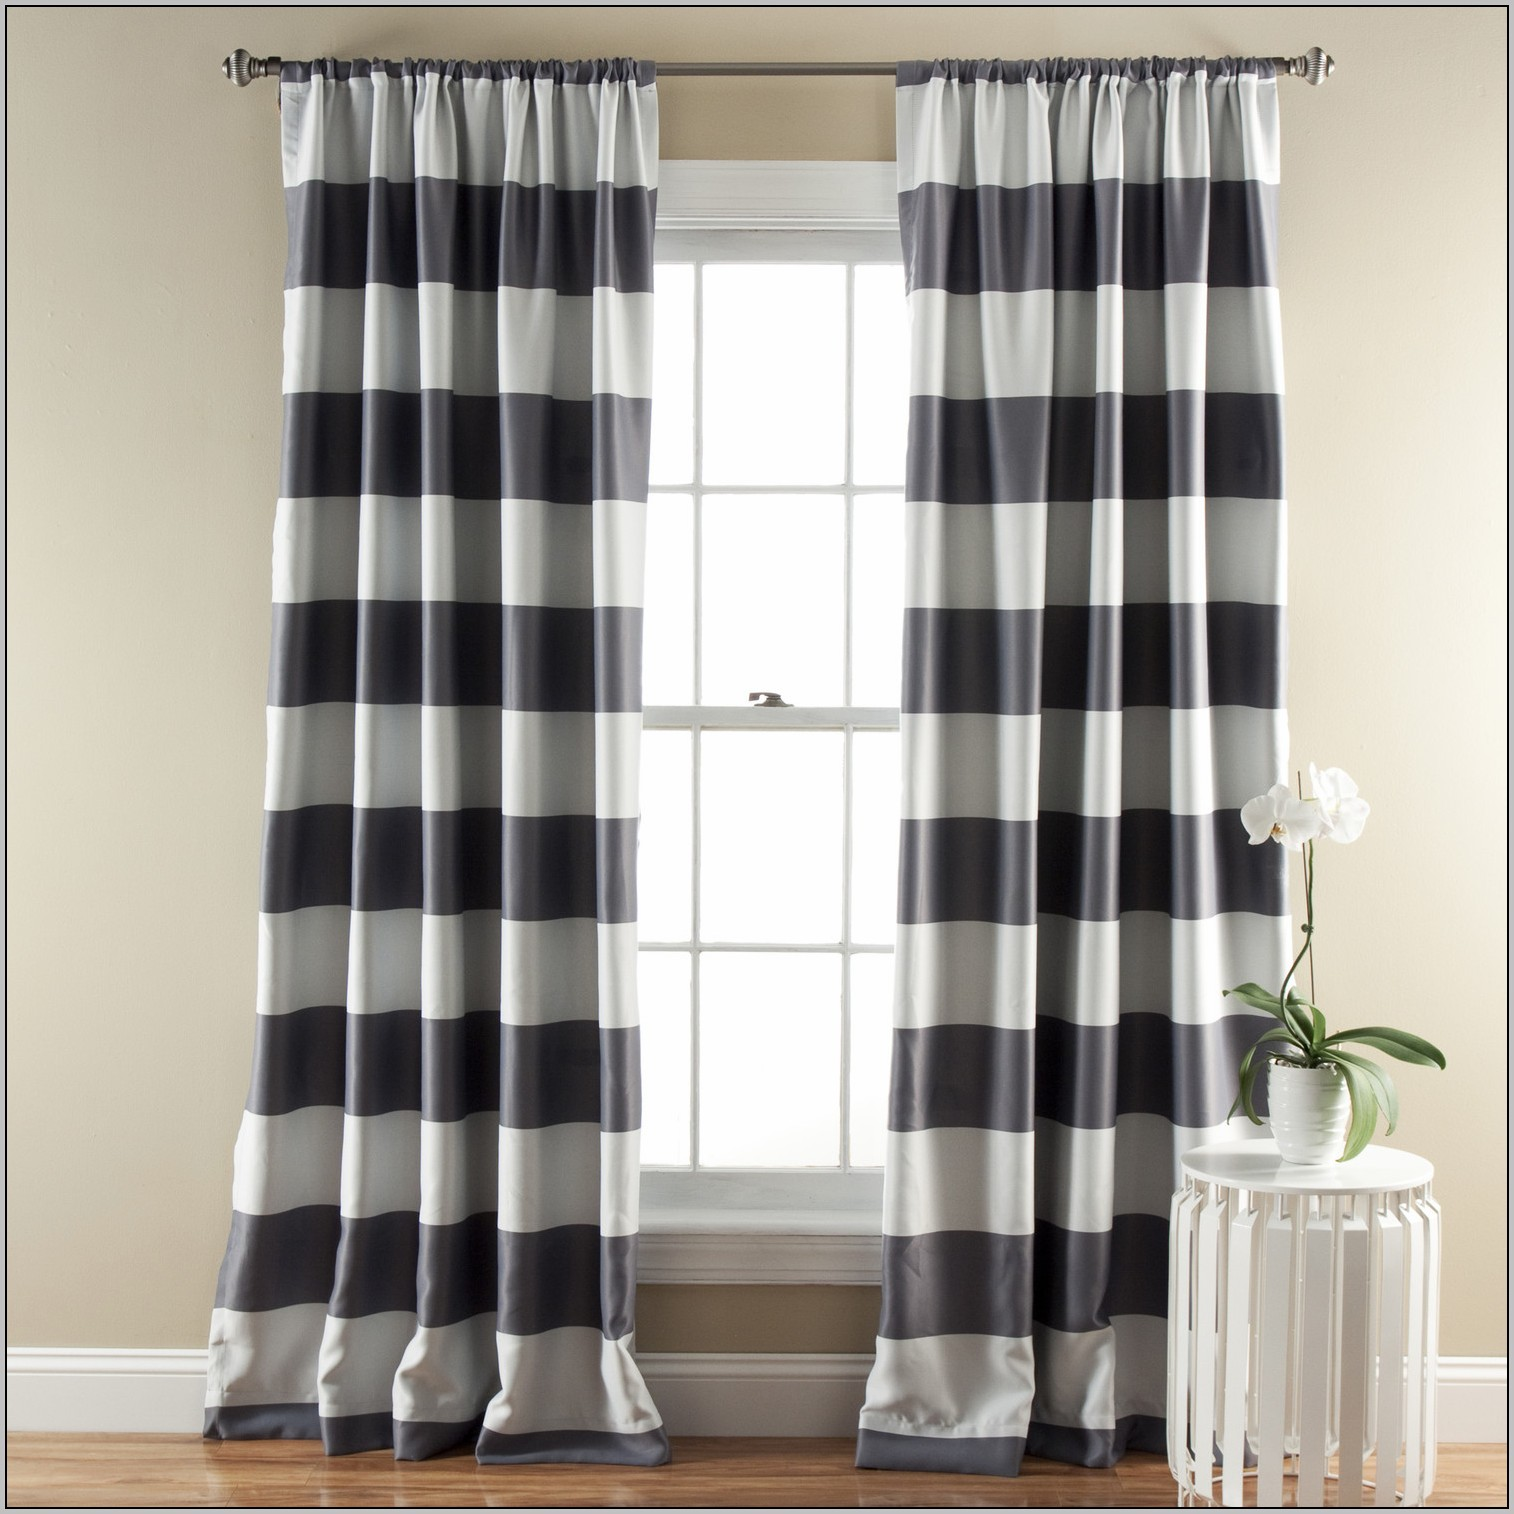 ikea-blackout-curtains-uk